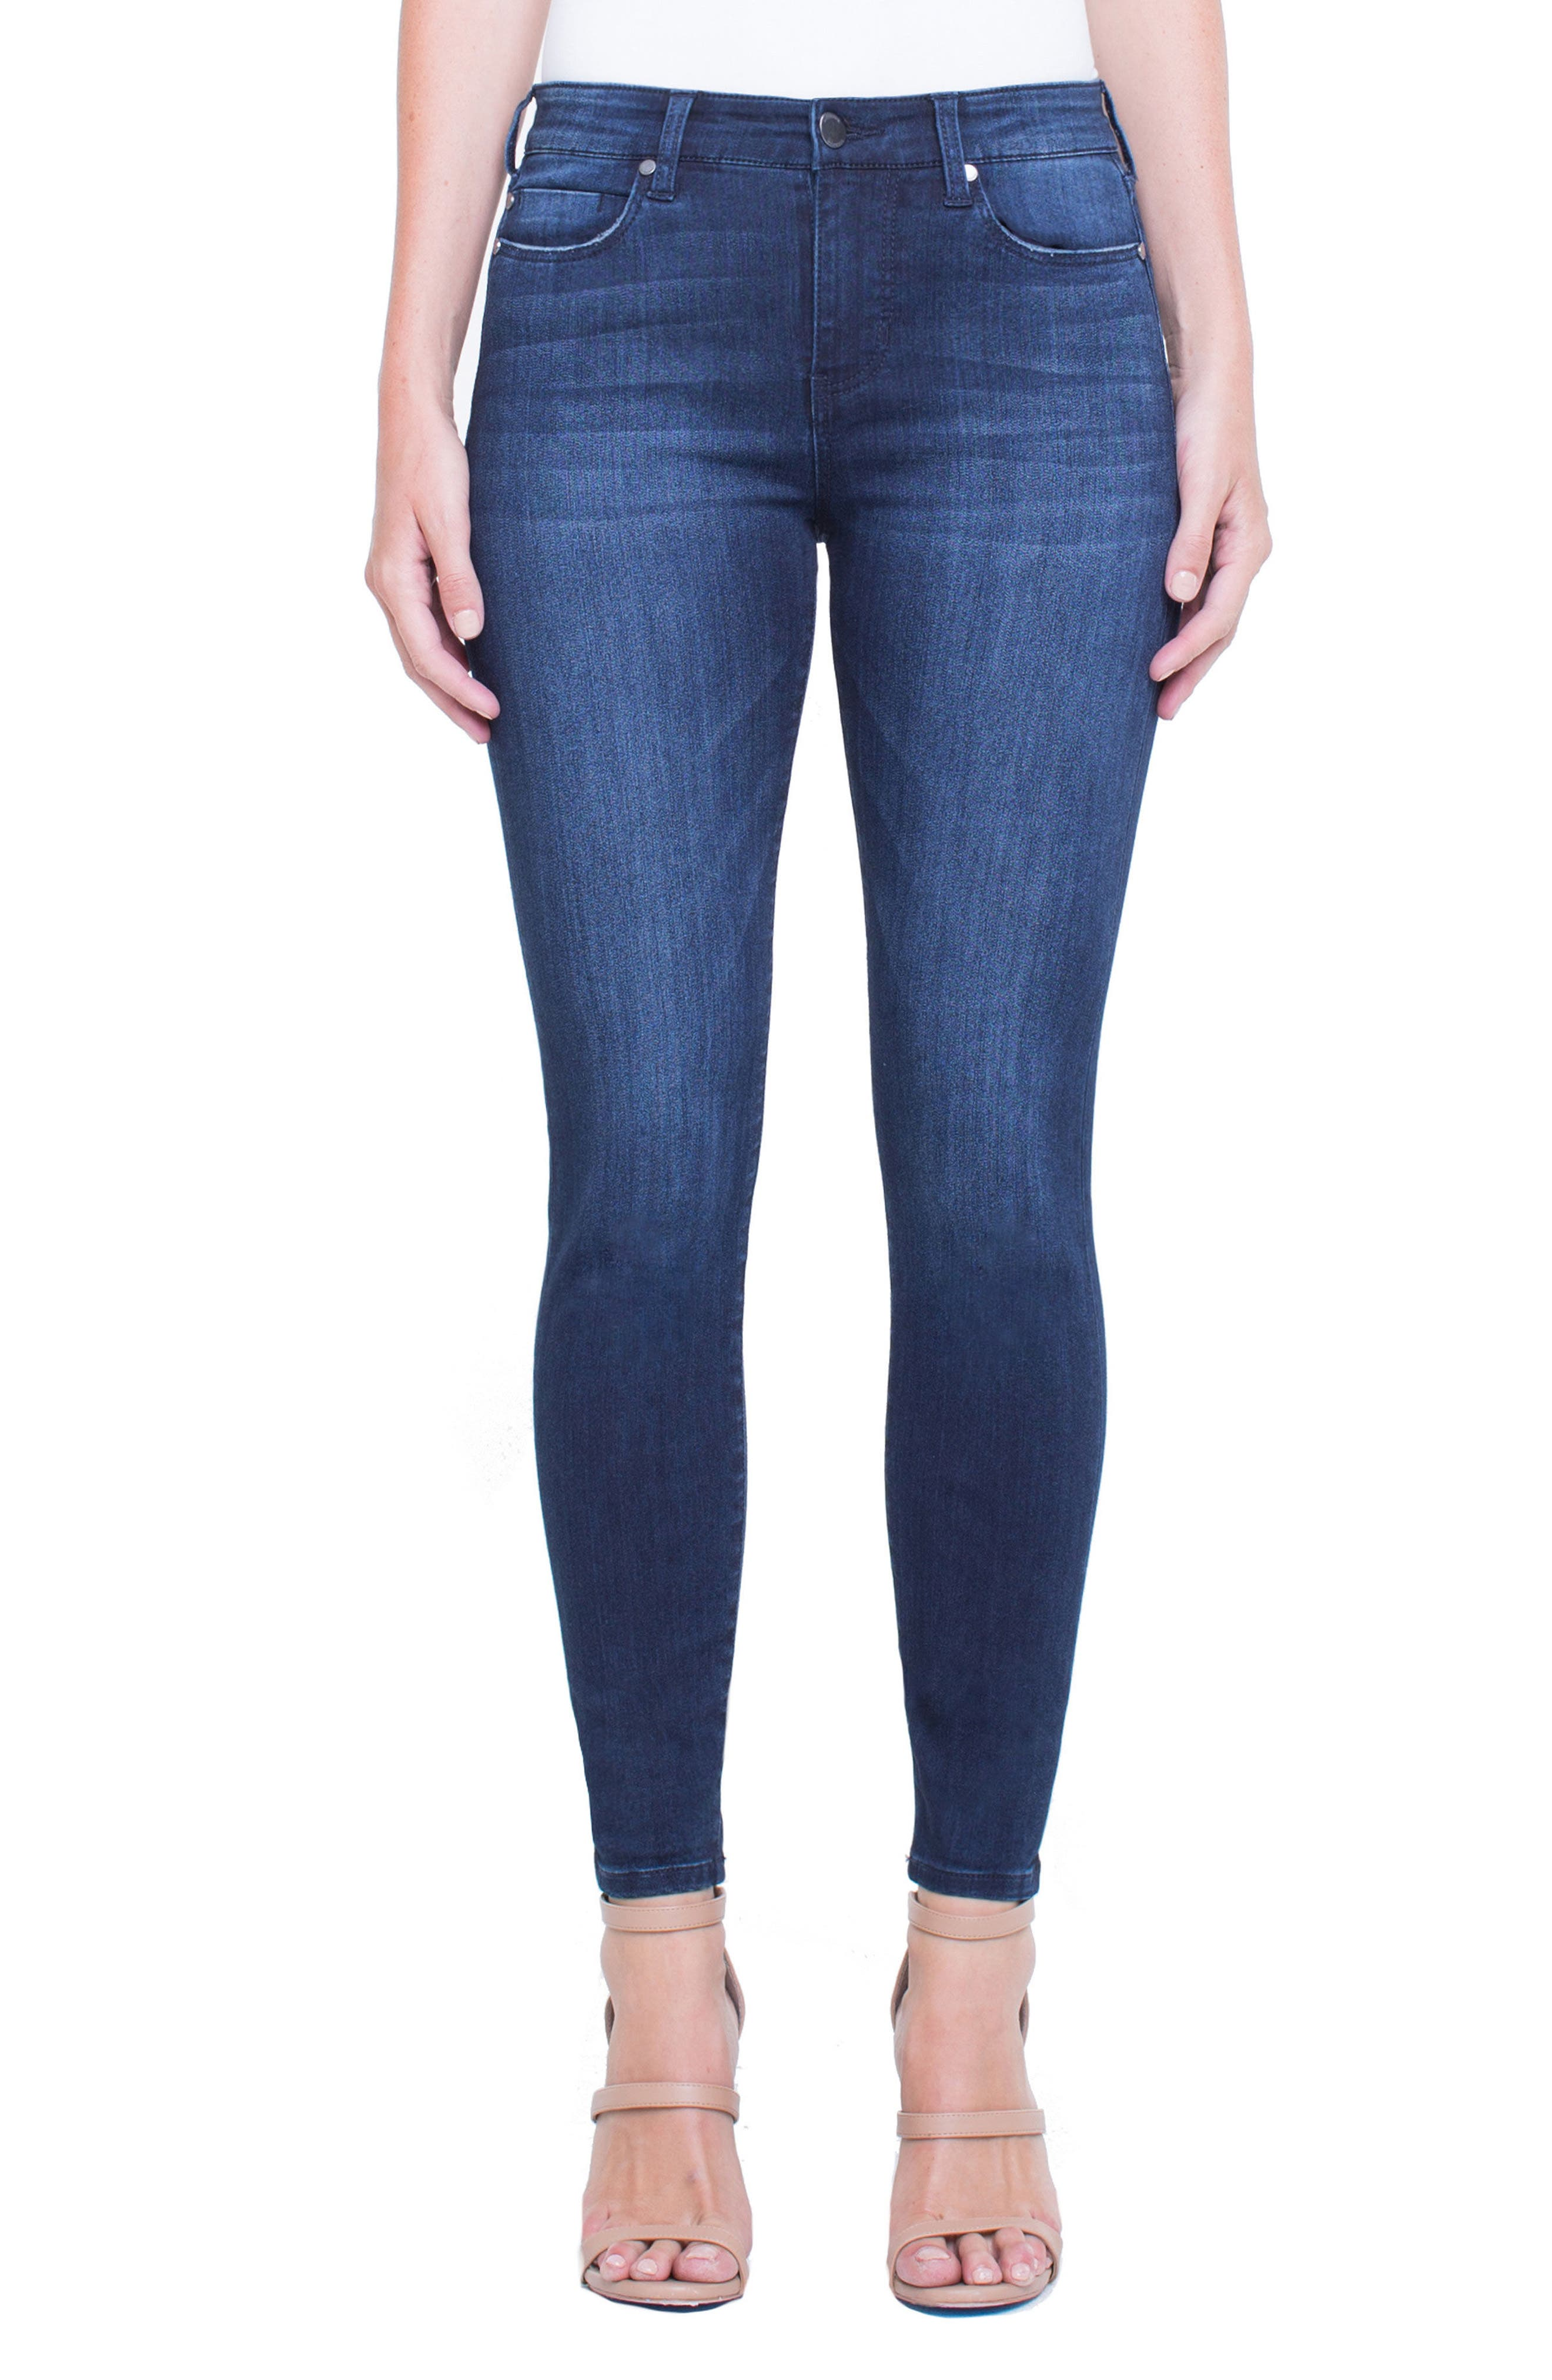 Jeans Company Penny Ankle Skinny Jeans,                         Main,                         color, 405